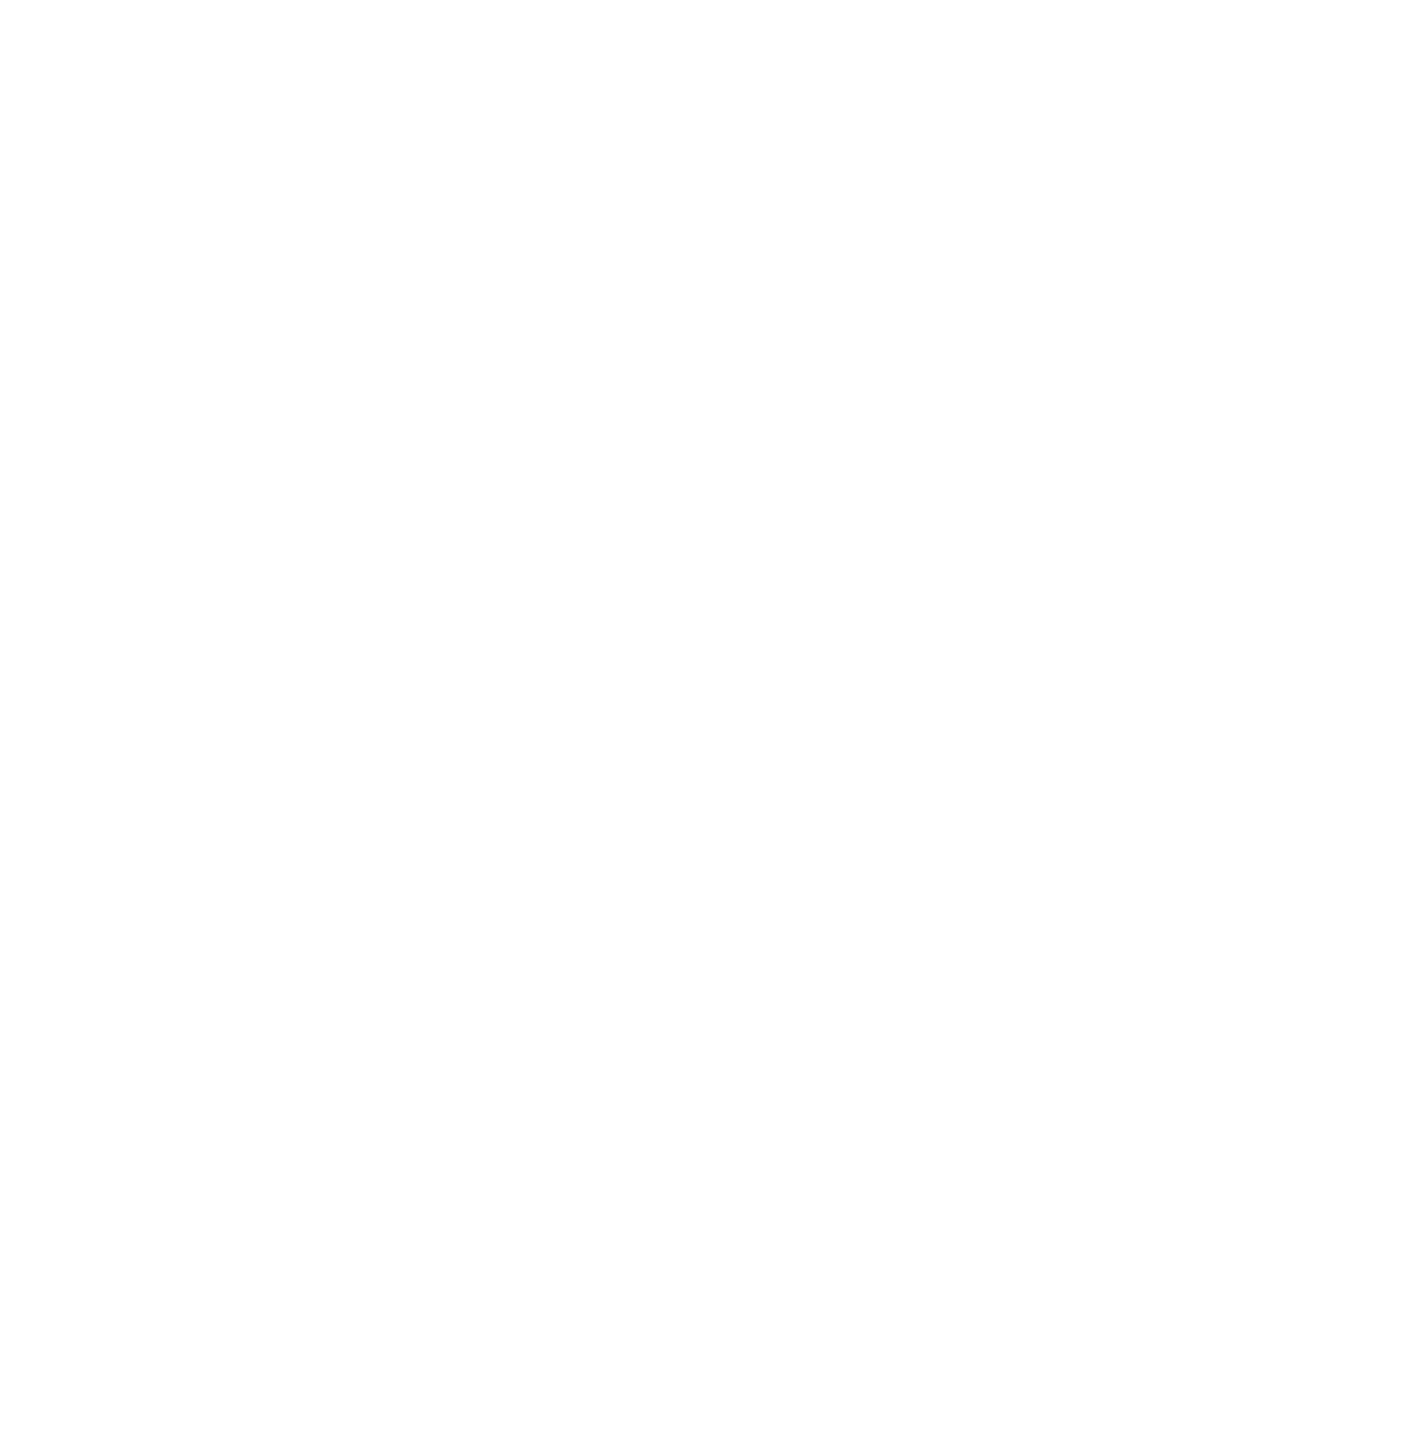 Gatlinburg Photo Studios | Gatlinburg and Pigeon Forge Photographers